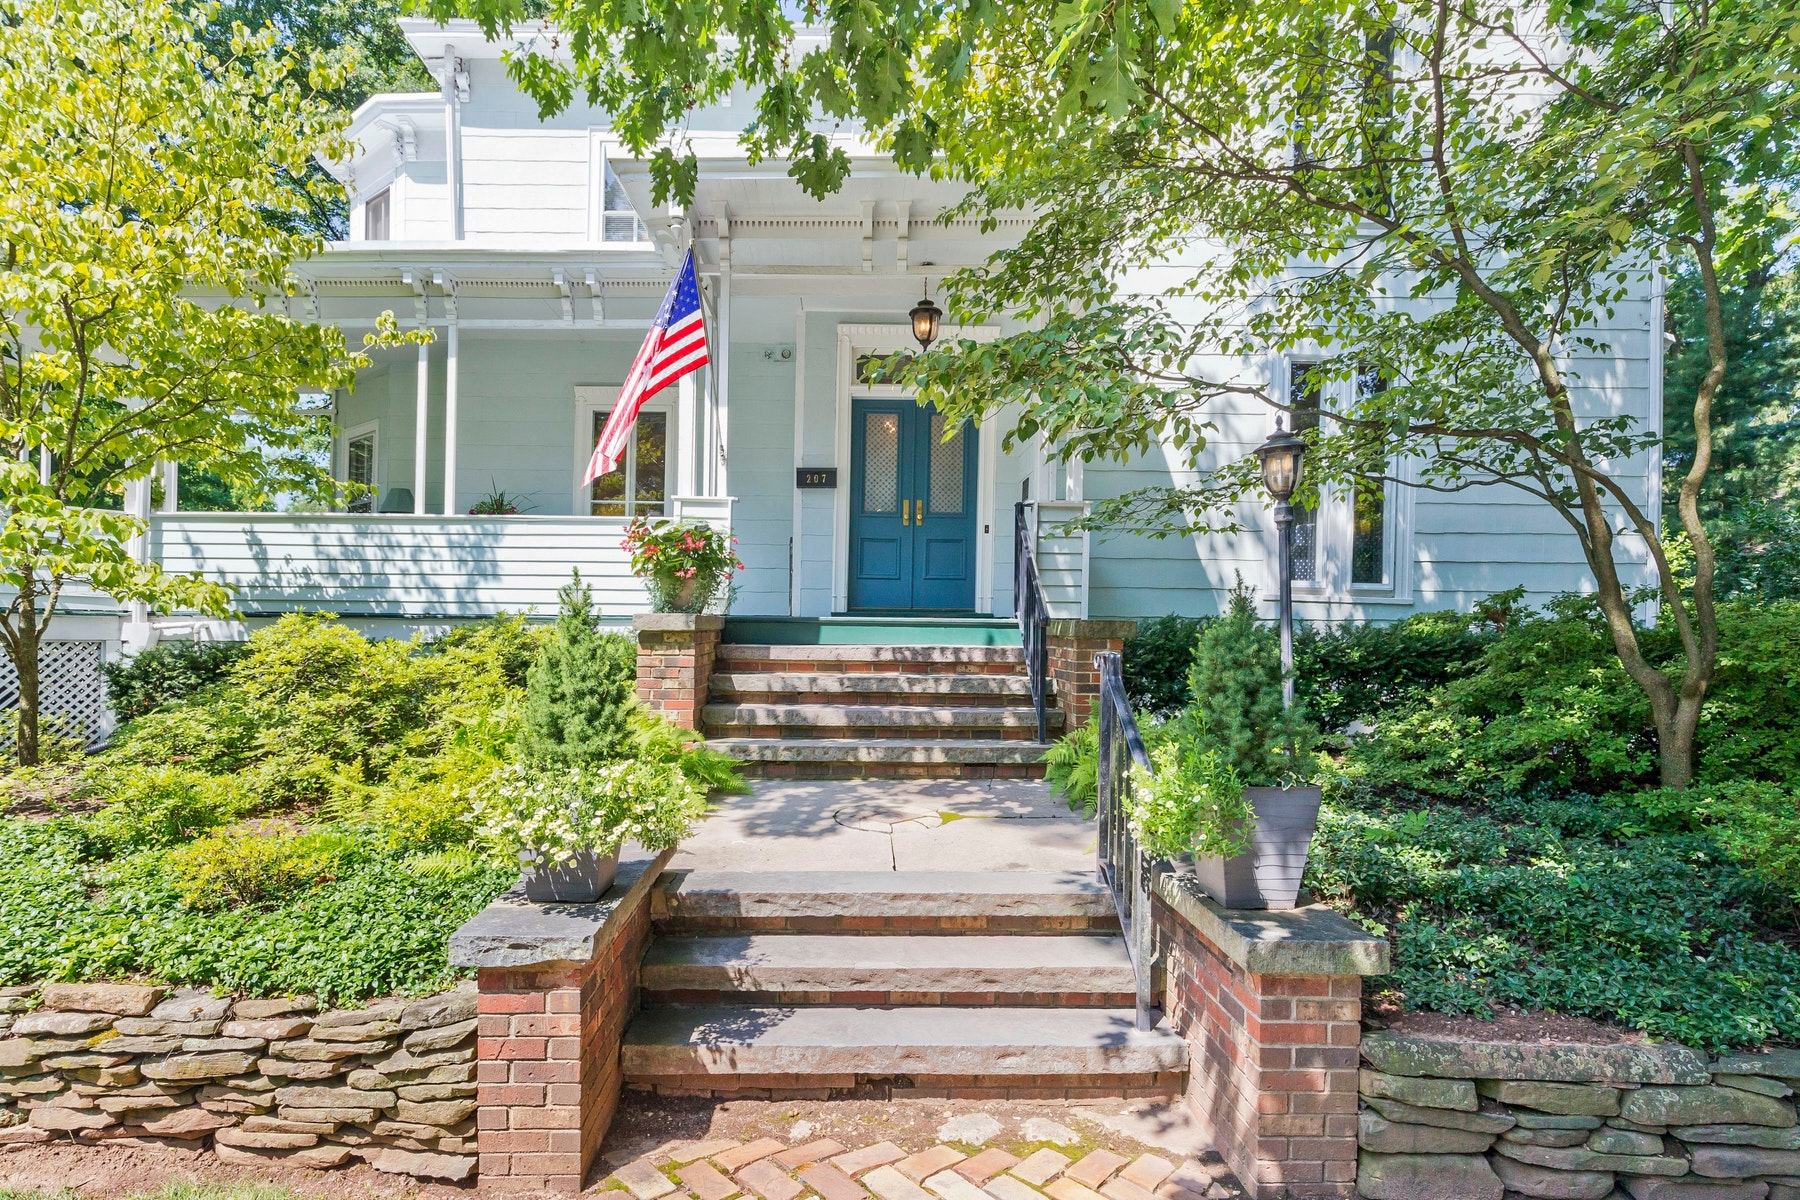 Multi-Family Homes for Sale at Historic Victorian with Garden Apartment 207 Lake Ave Metuchen, New Jersey 08840 United States